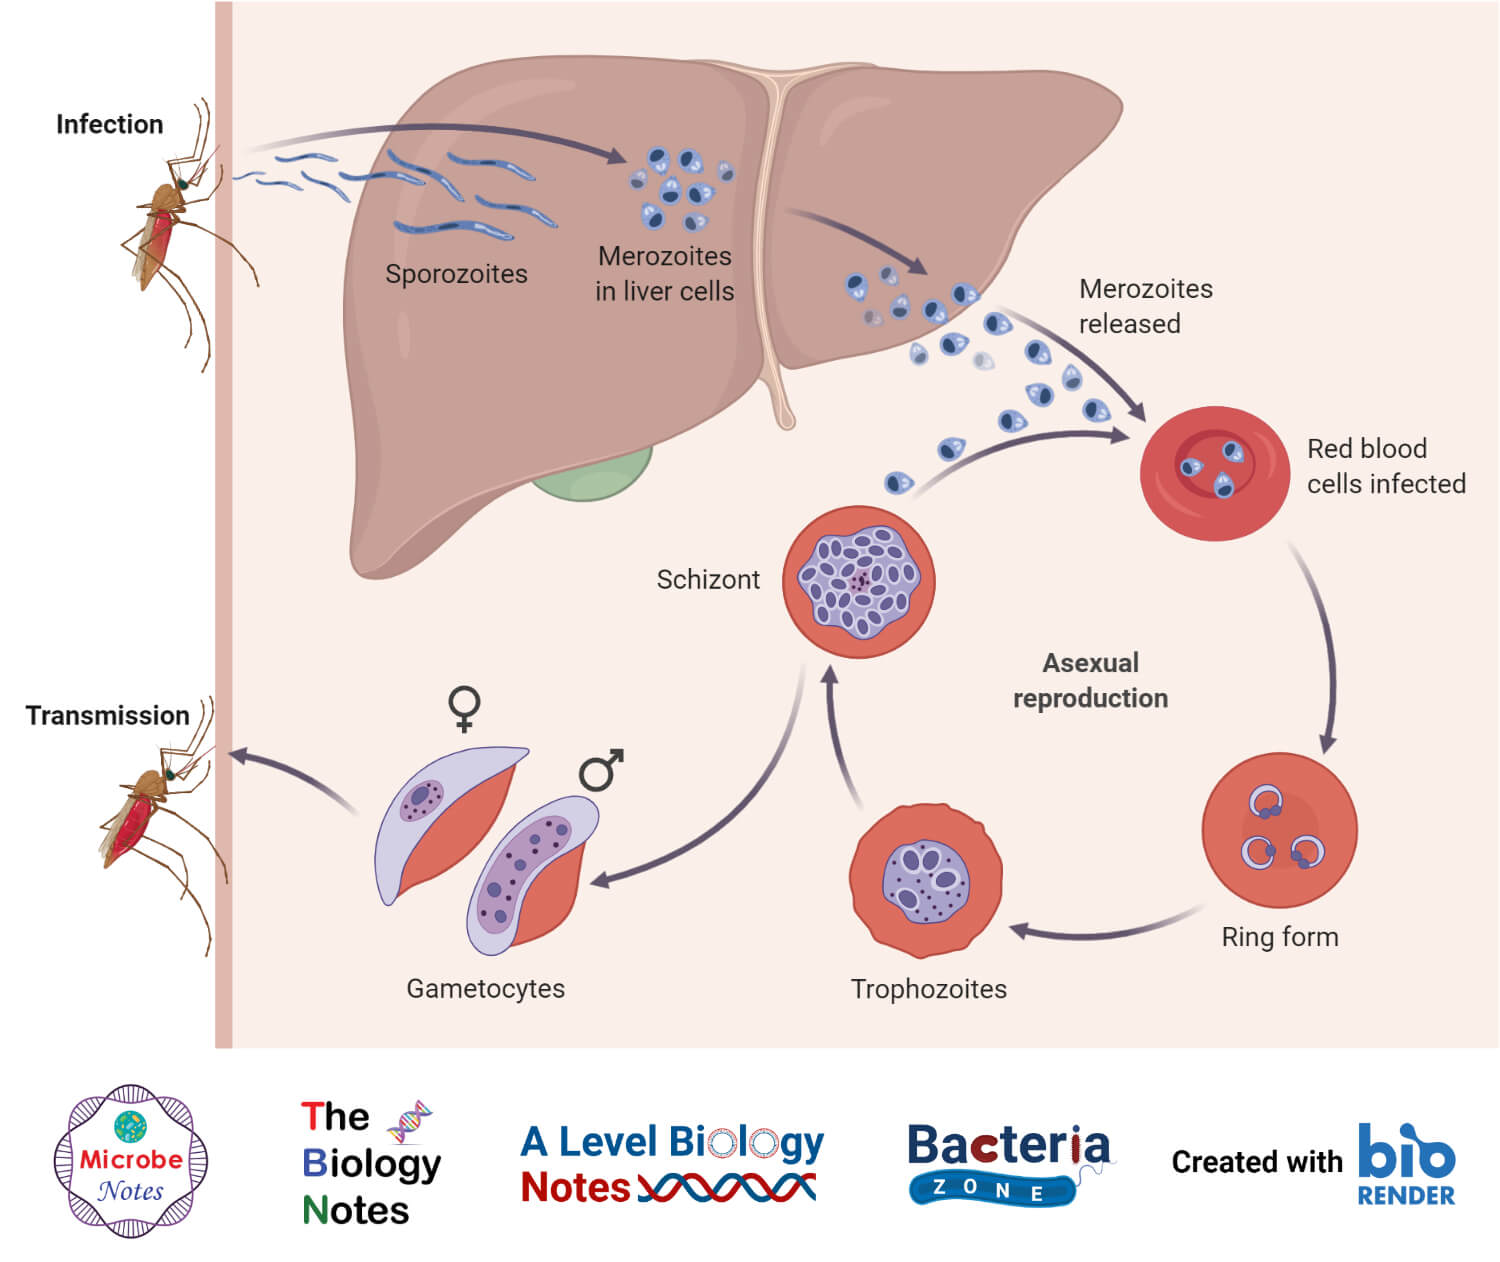 Malaria Transmission Cycle- Asexual cycle or schizogony in man